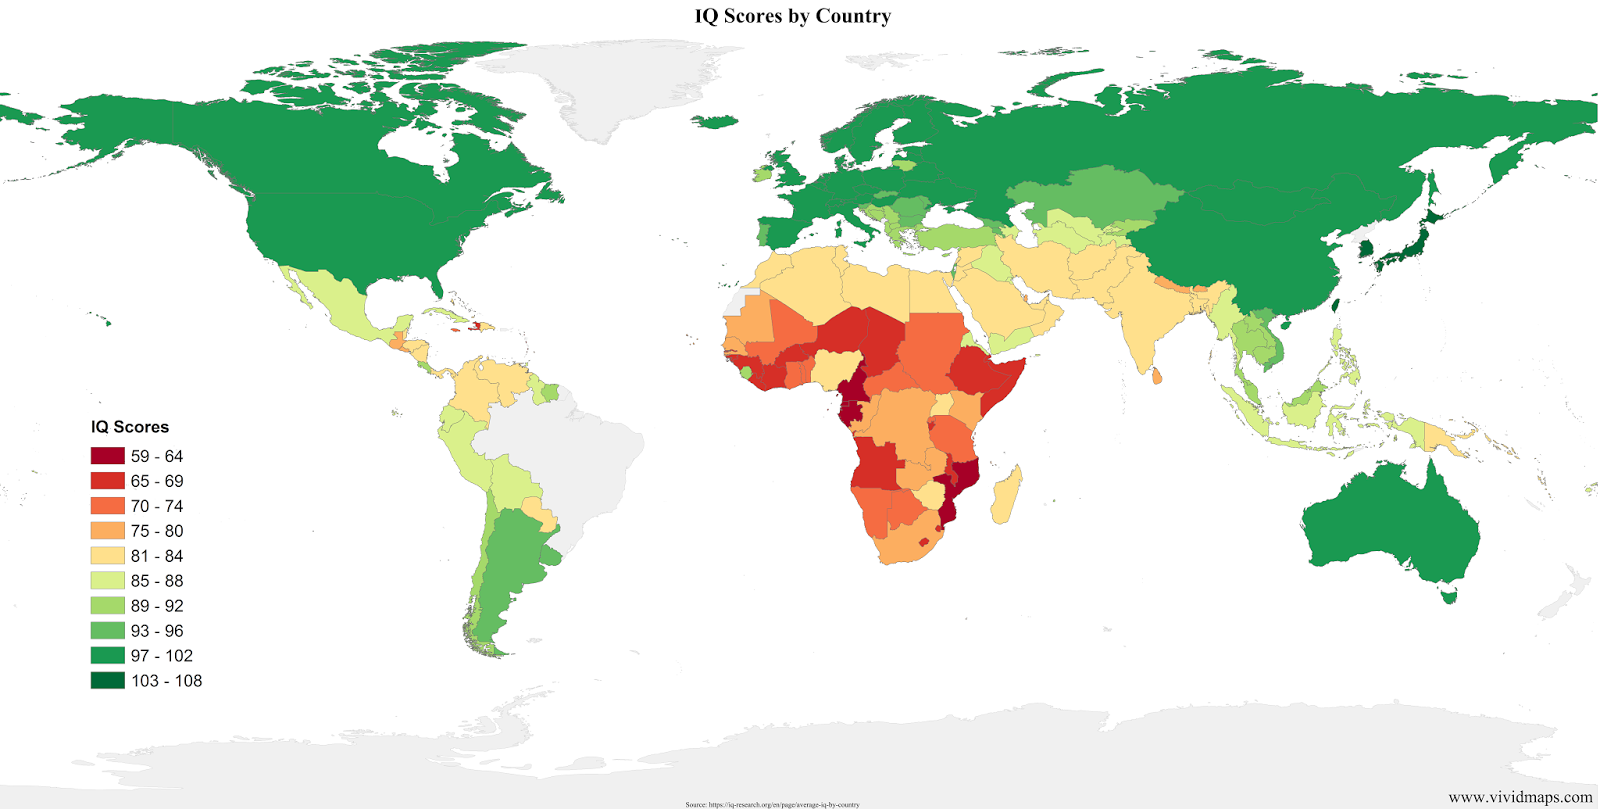 IQ Scores by country - Vivid Maps